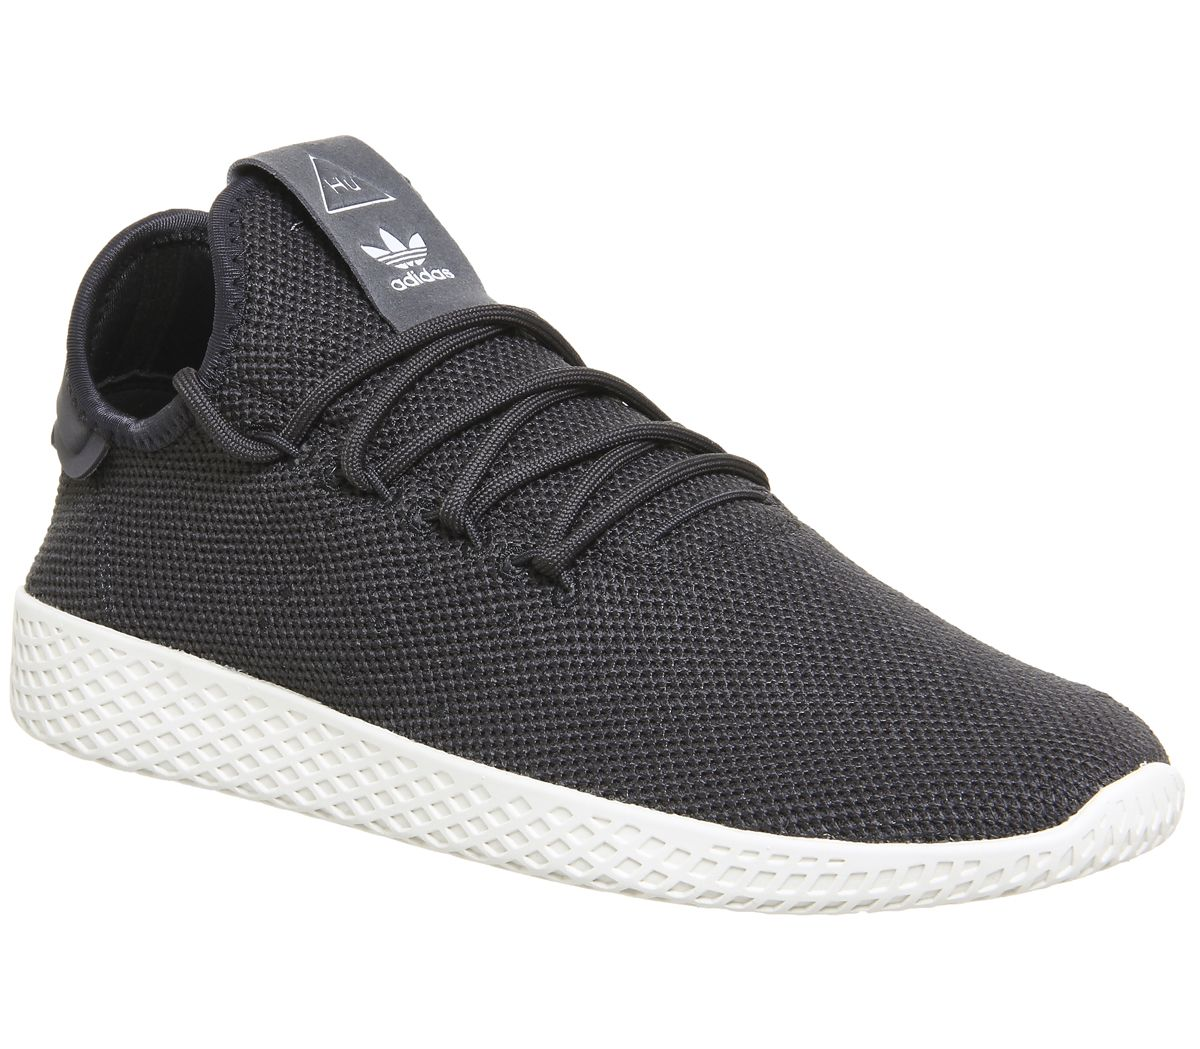 262c1b396997a adidas Pw Tennis Trainers Carbon Chalk White - Unisex Sports